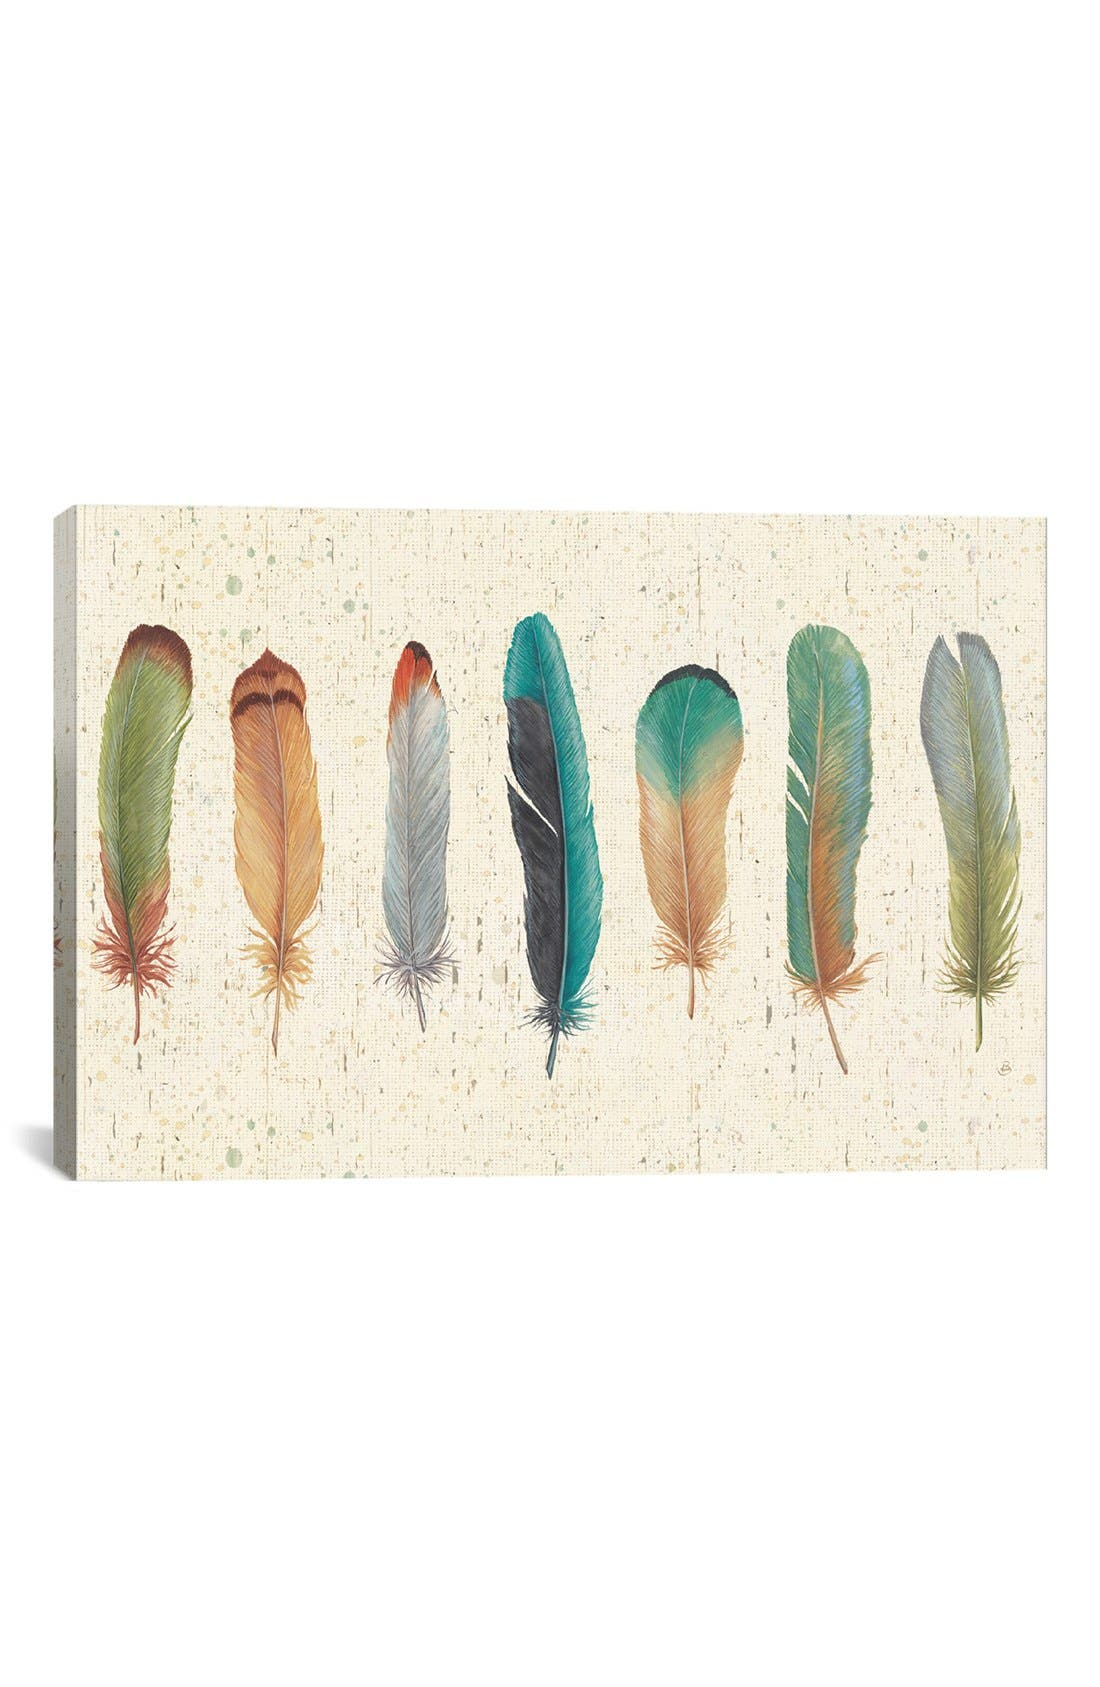 'Feather Tales VII' Giclée Print Canvas Art,                             Main thumbnail 1, color,                             Beige